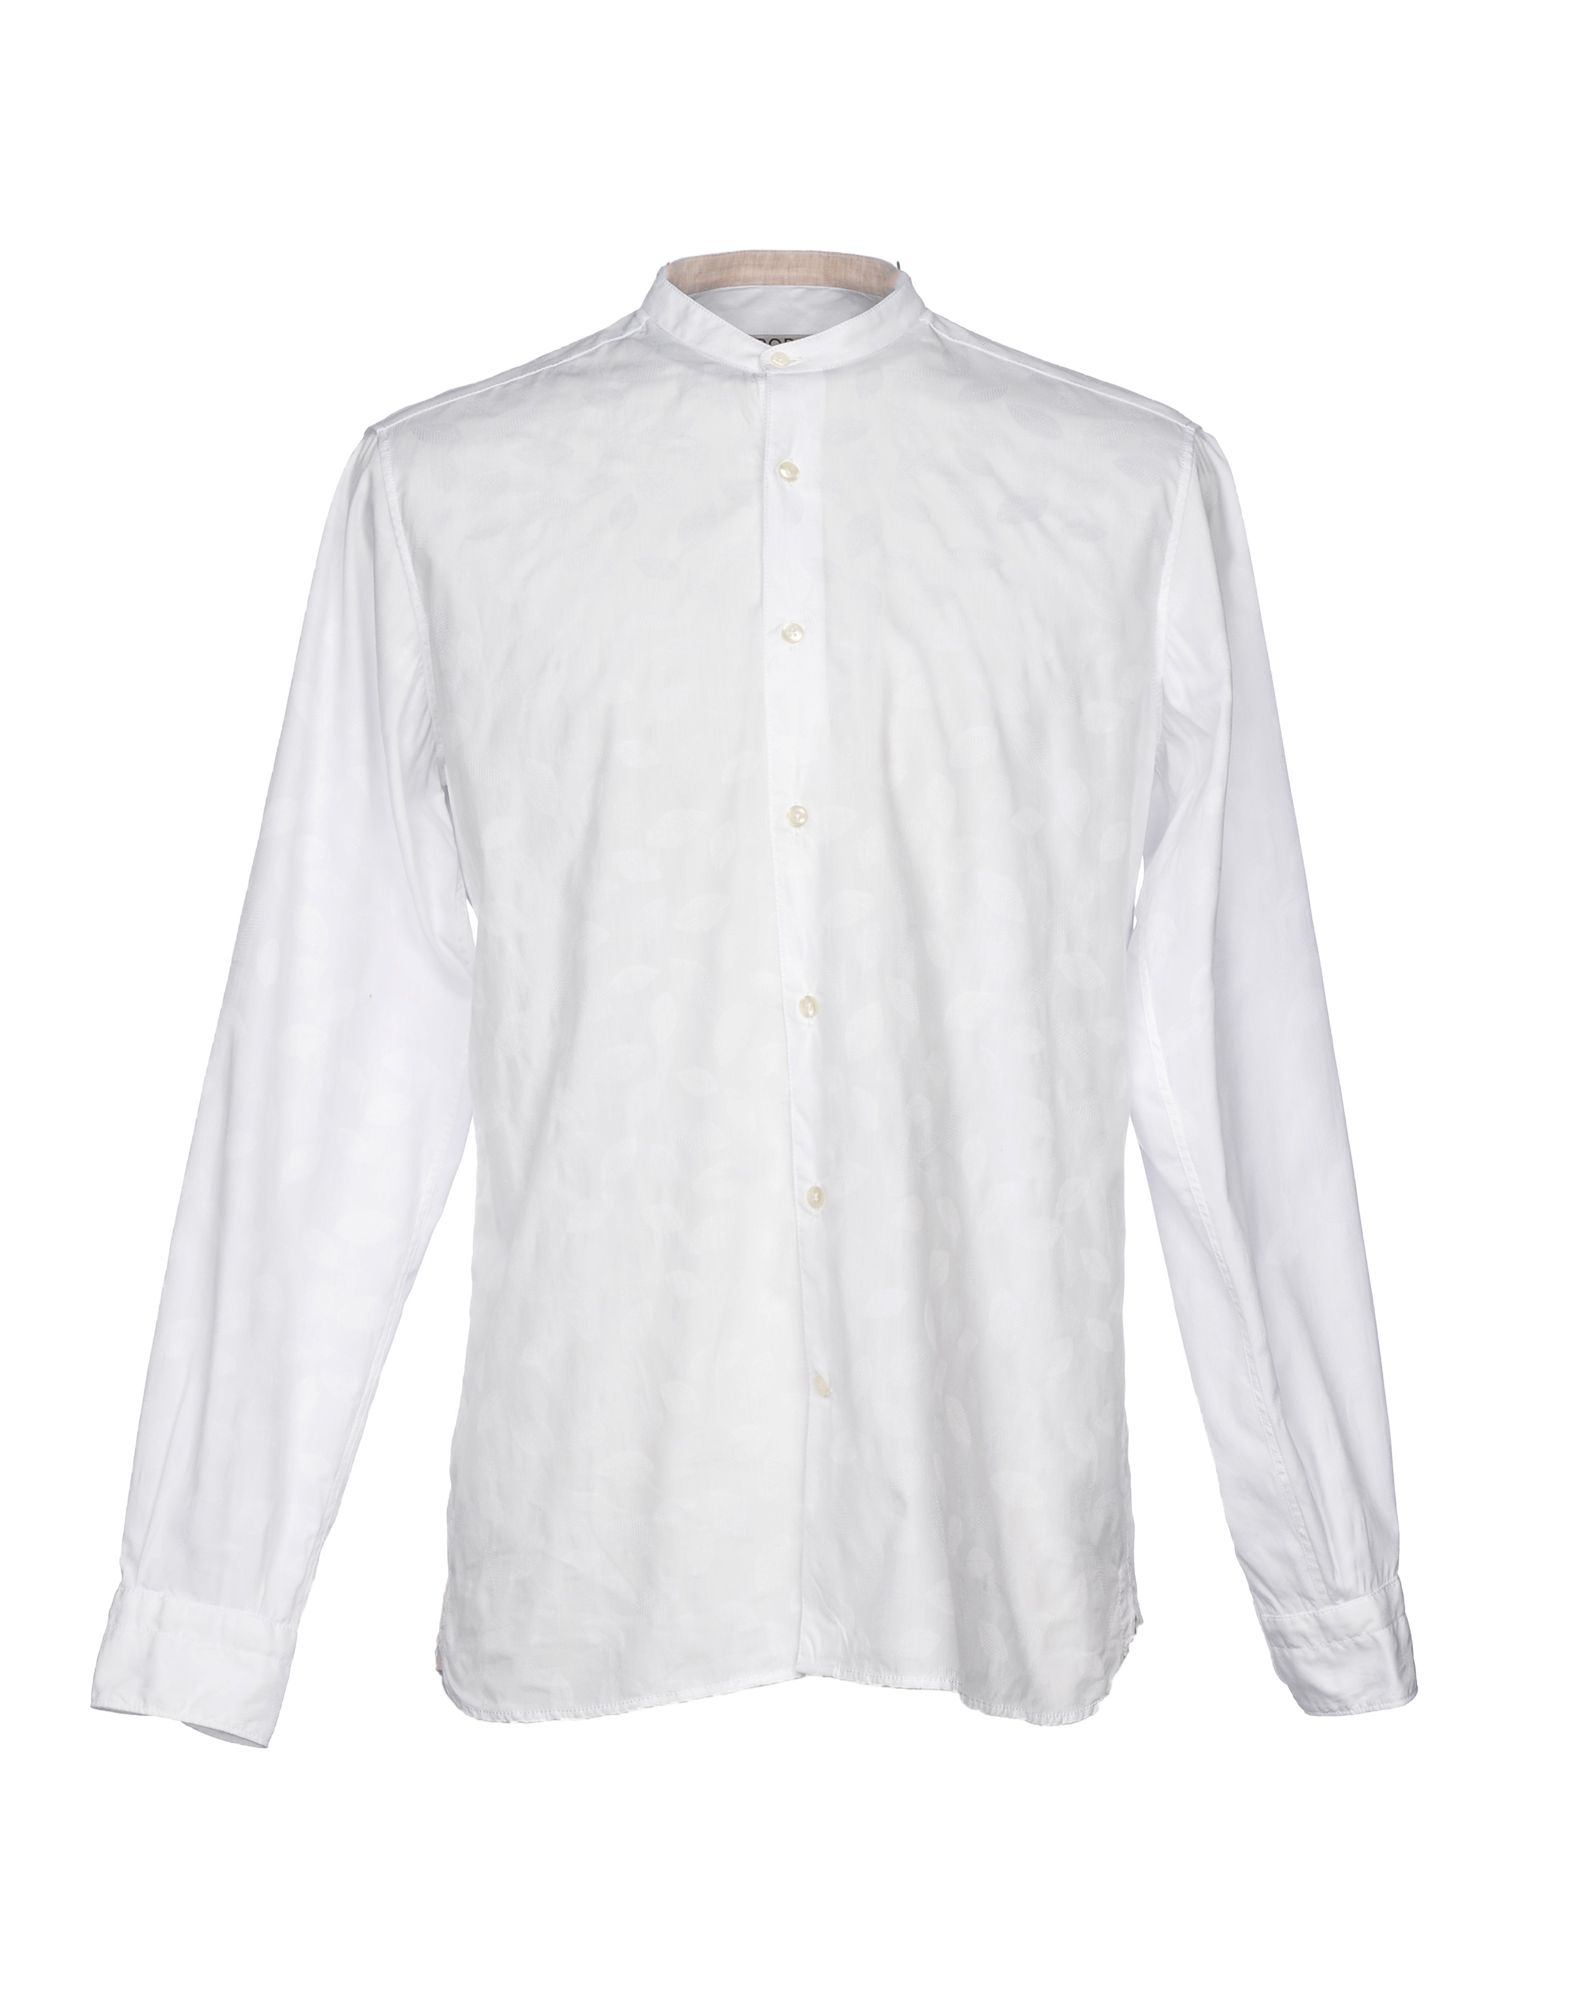 RODA Solid Color Shirt in White